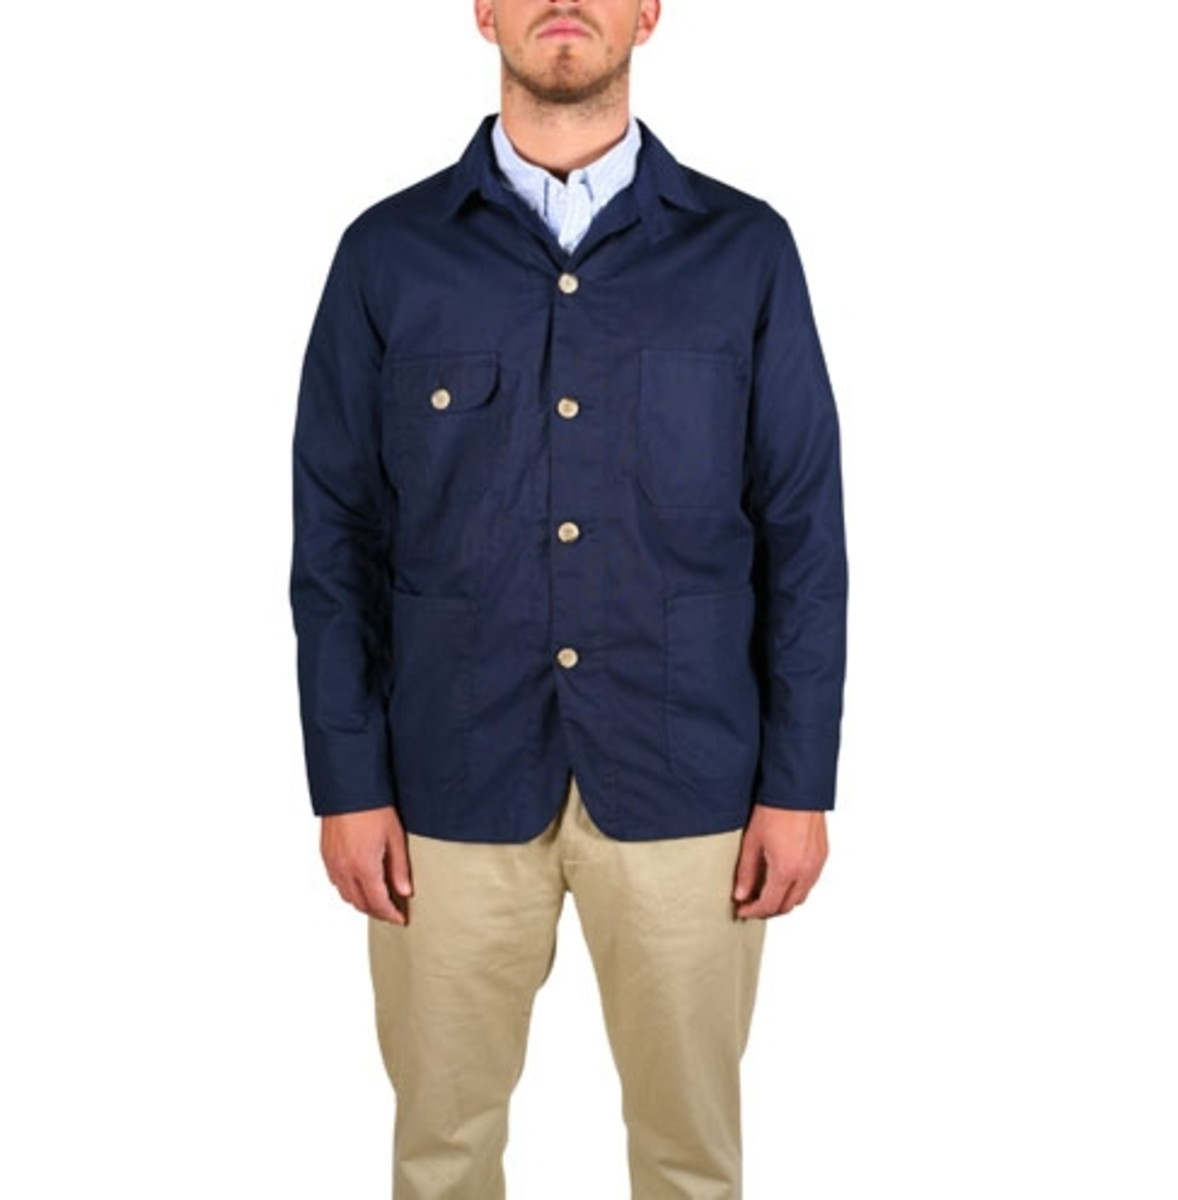 Penfield SS2011 Jackets 52